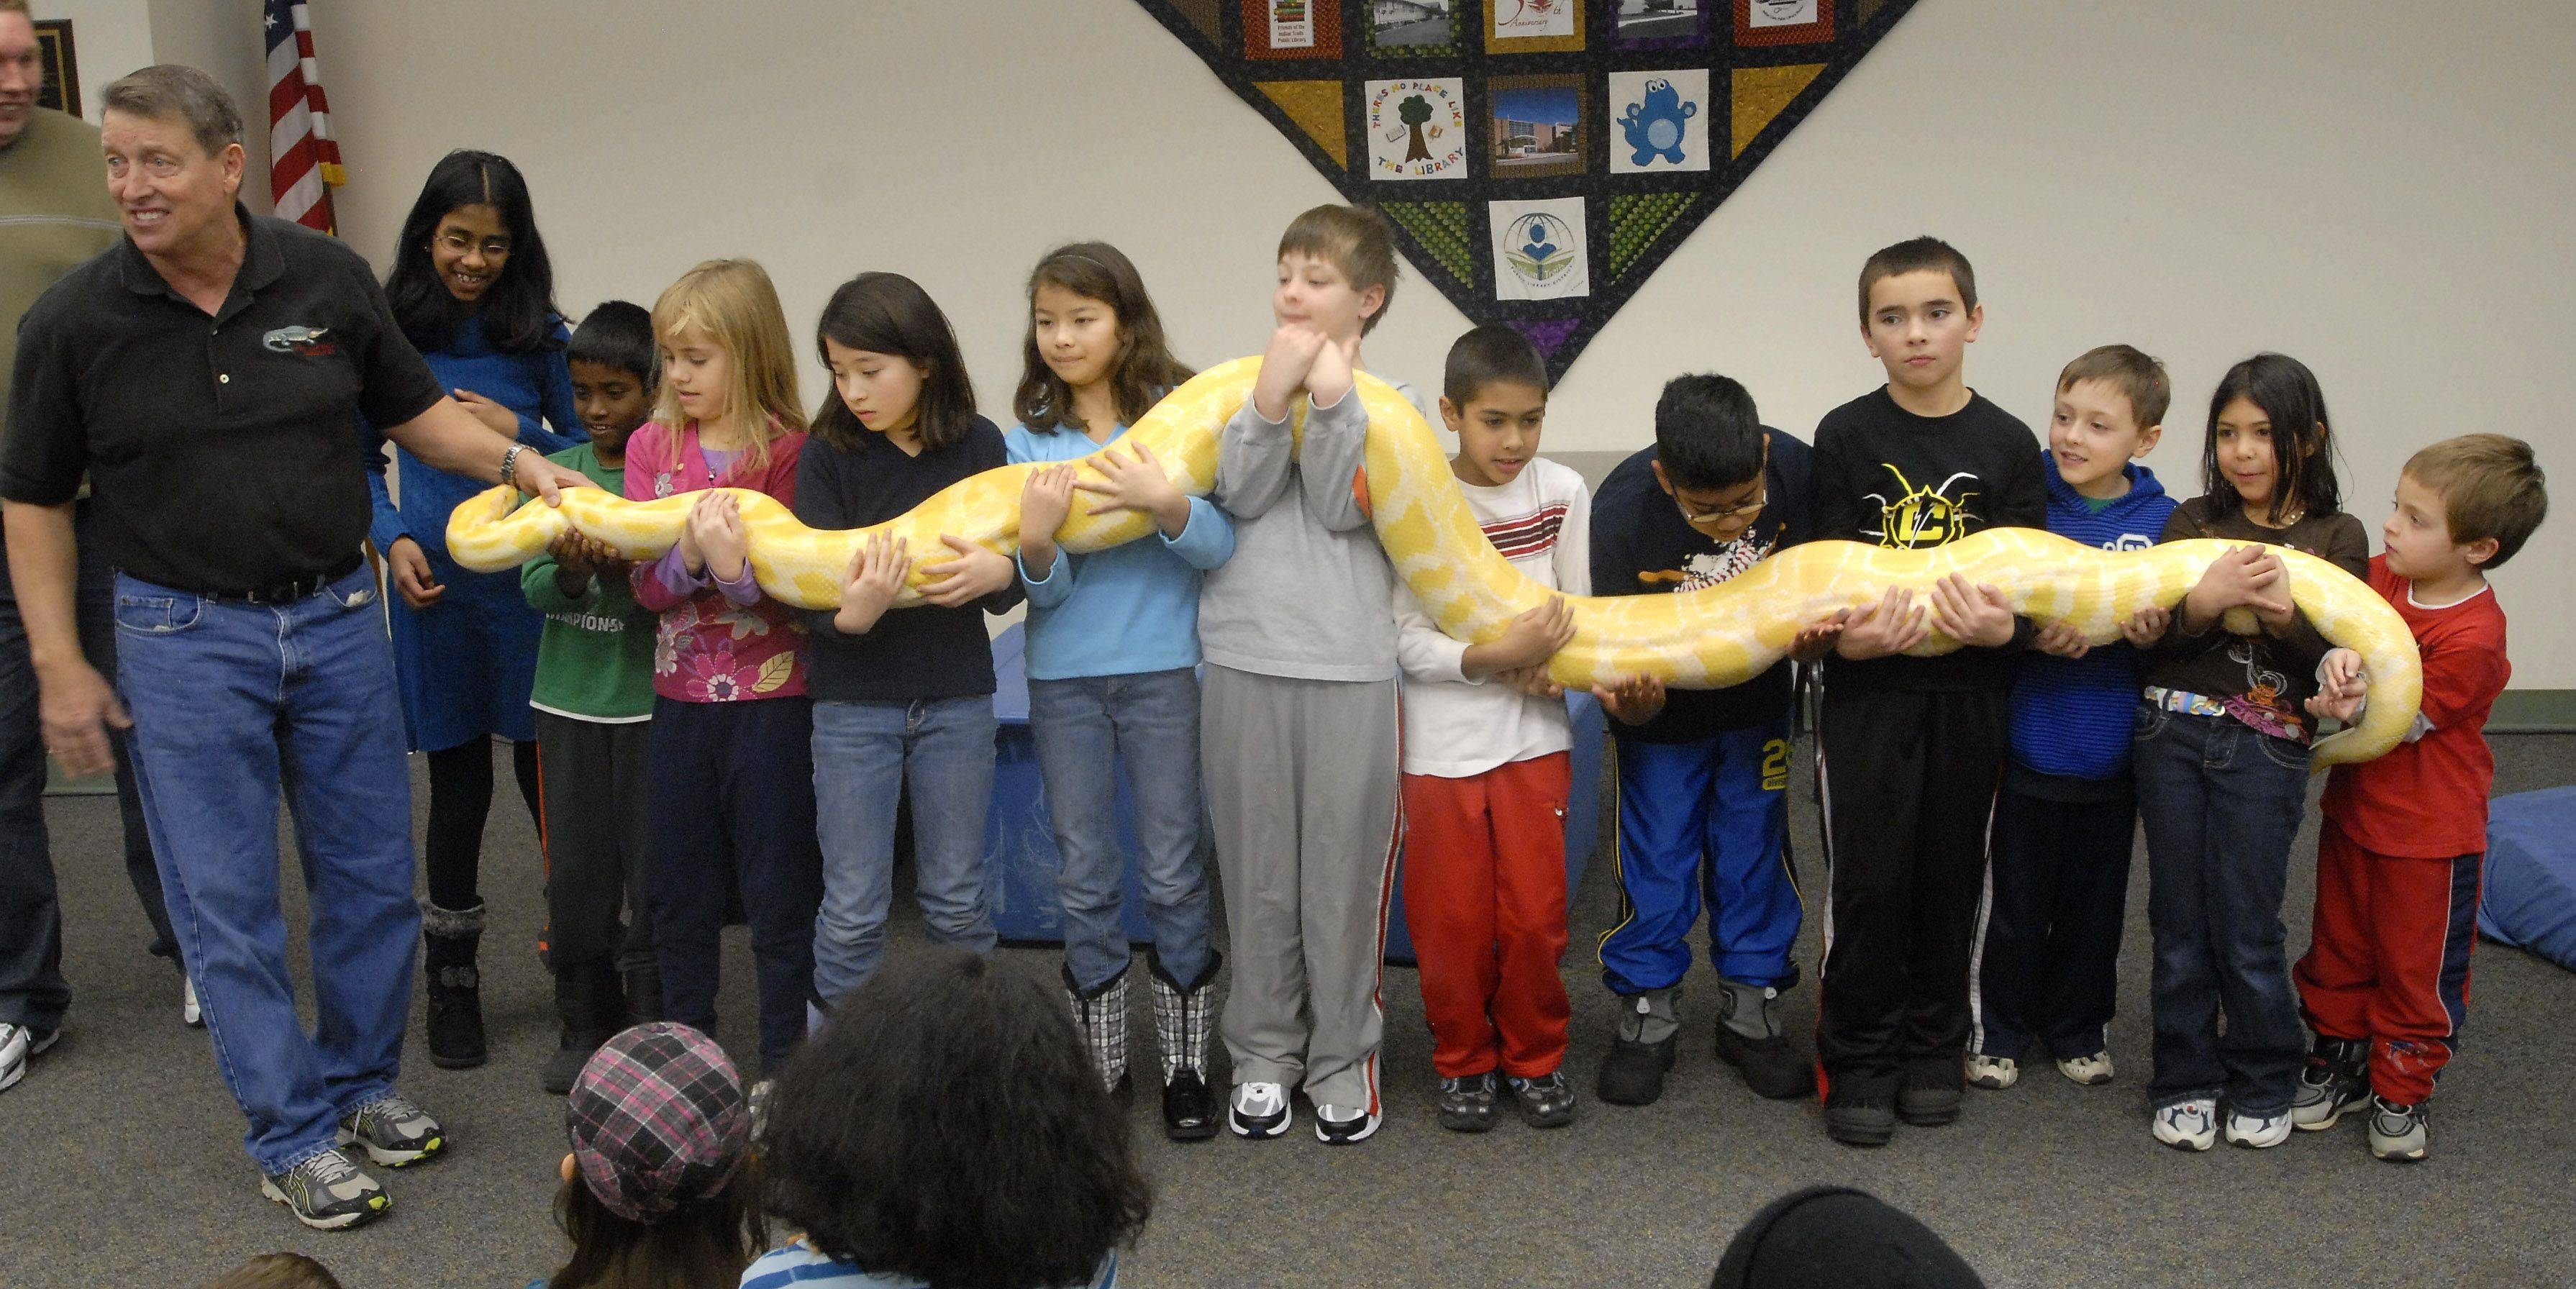 Kids hold a albino Burmese python Wednesday during a presentation by reptile expert Jim Nesci at Indian Trails Public Library in Wheeling.